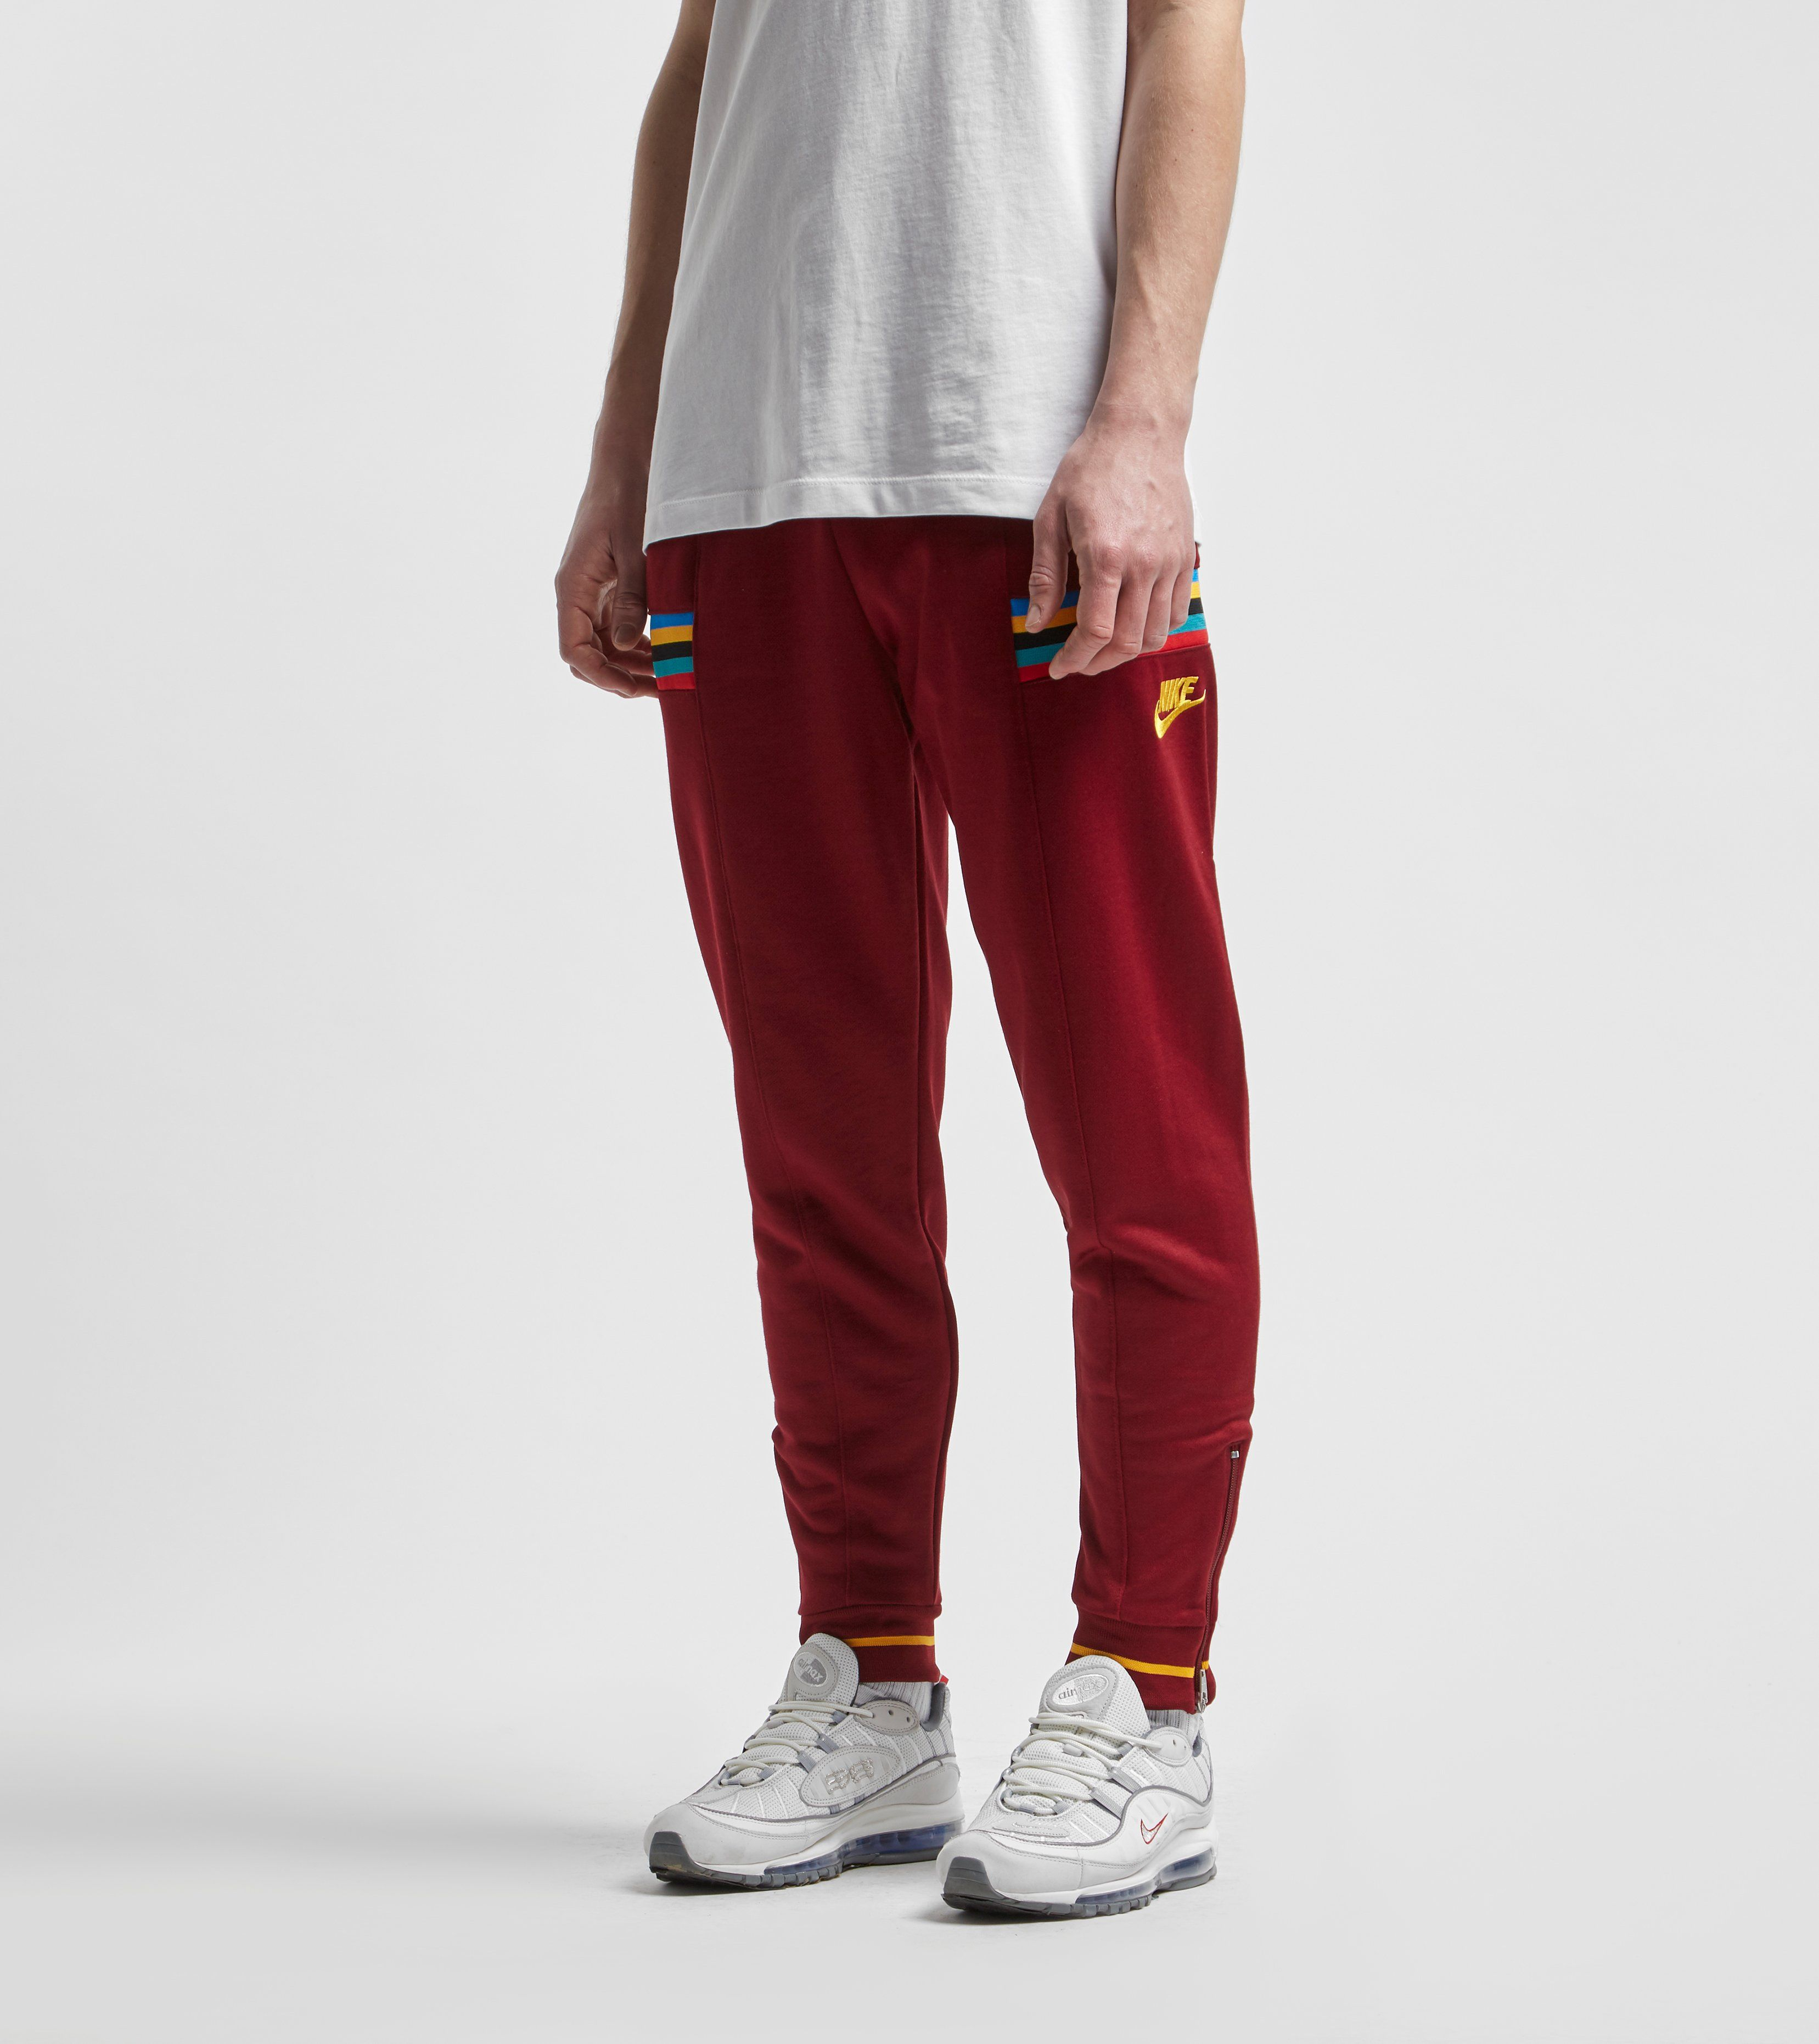 Nike Reissue Track Pants